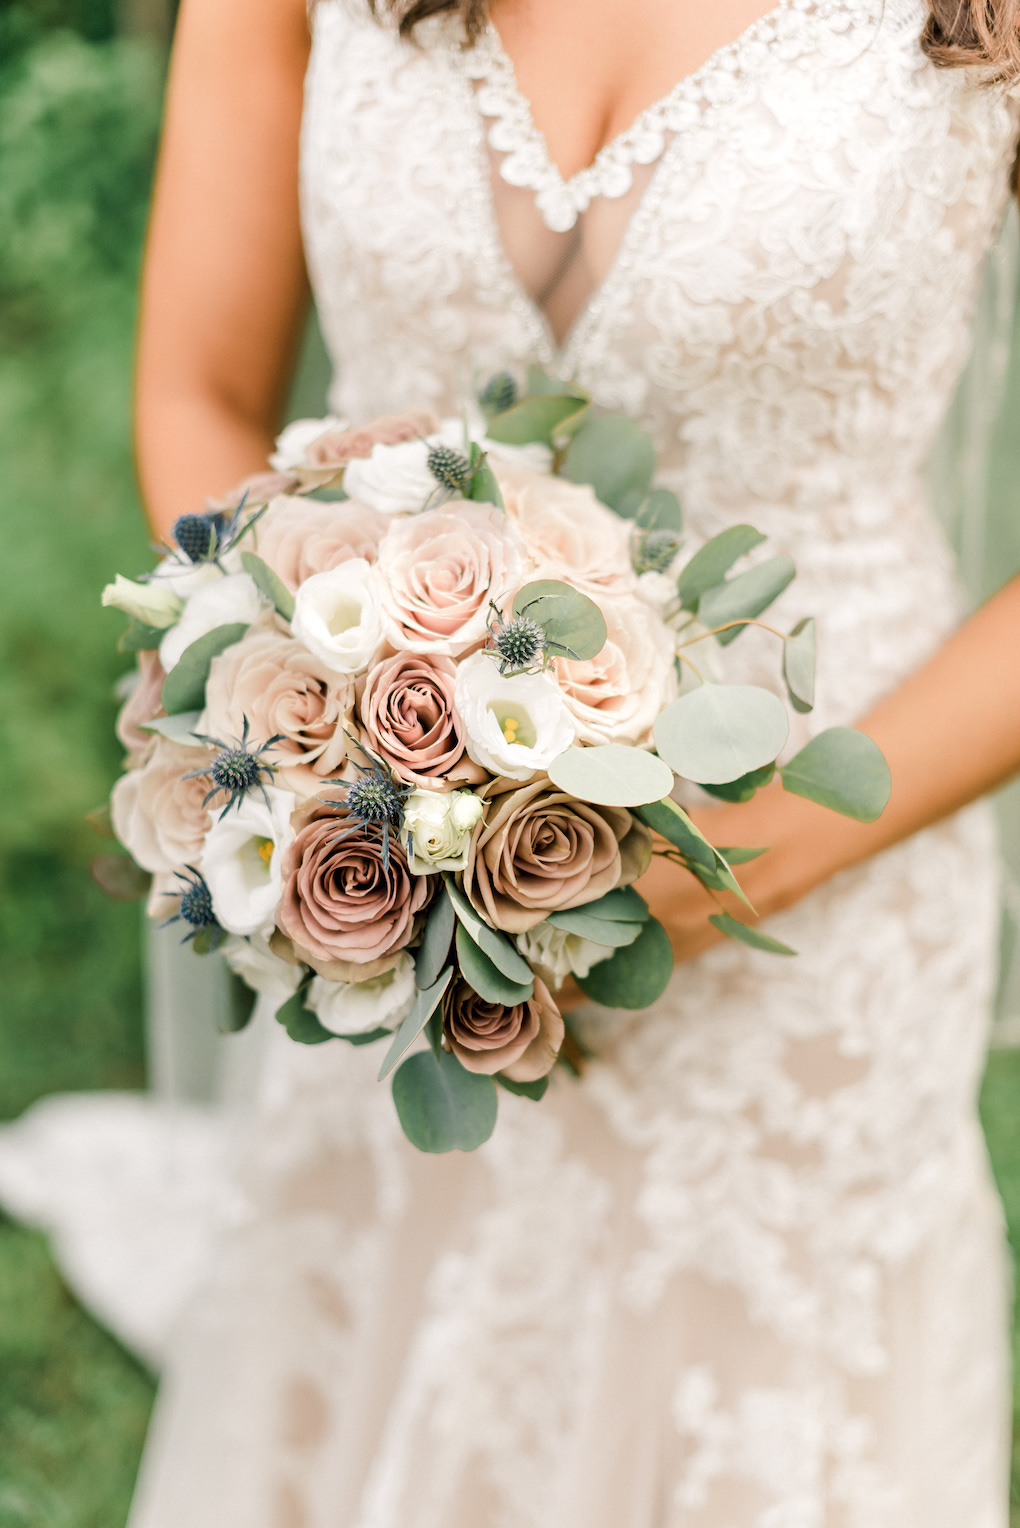 Soft palette bridal bouquet inspiration: Romantic Delicate Summer Wedding in Pittsburgh planned by Exhale Events. See more at exhale-events.com!